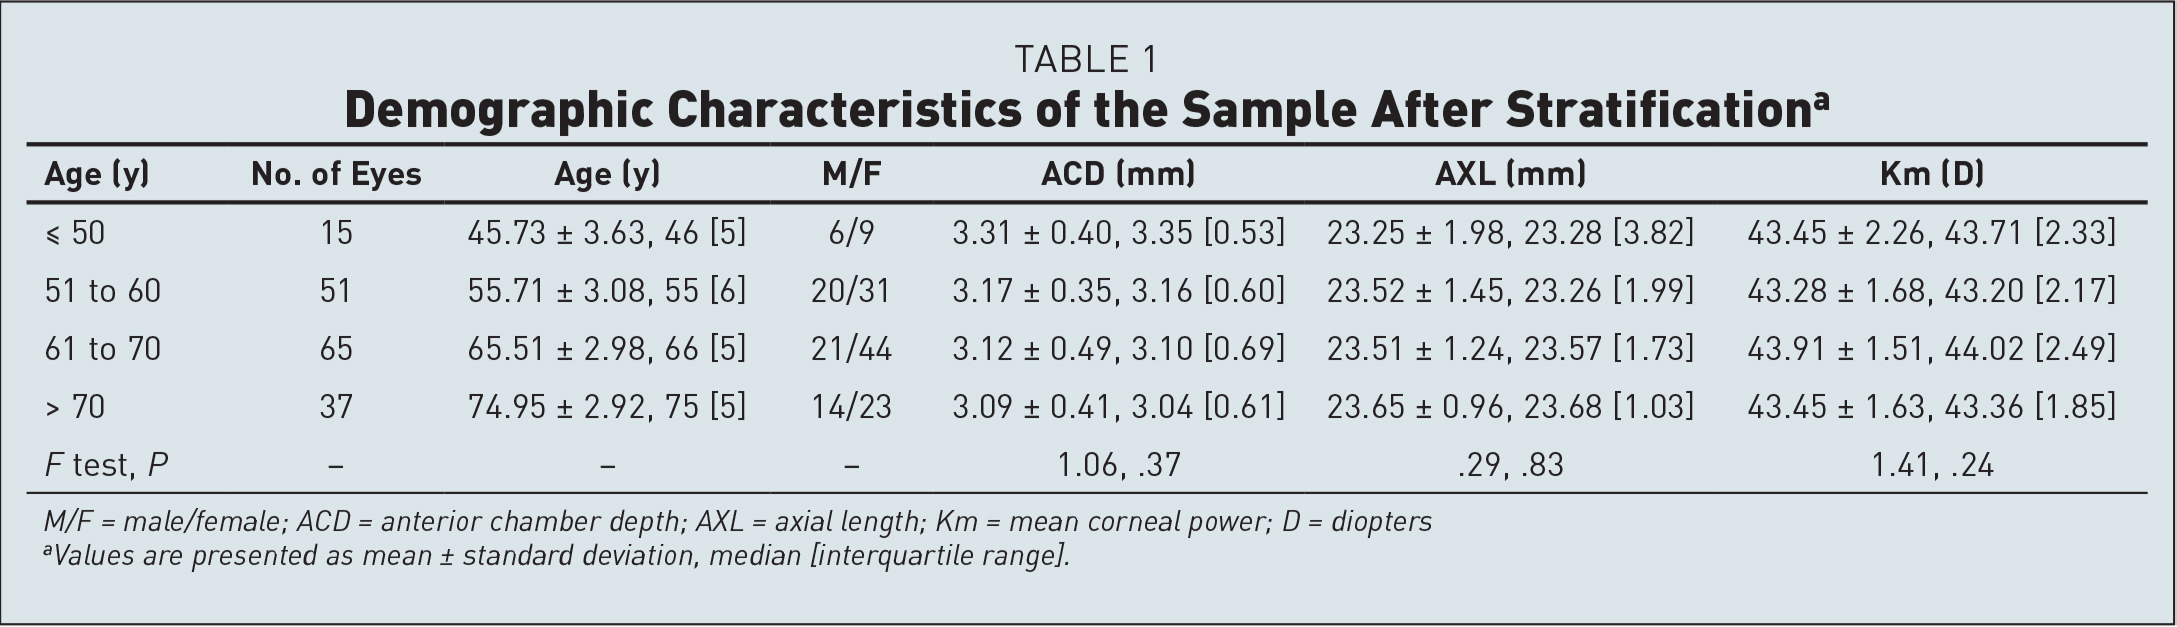 Demographic Characteristics of the Sample After Stratificationa